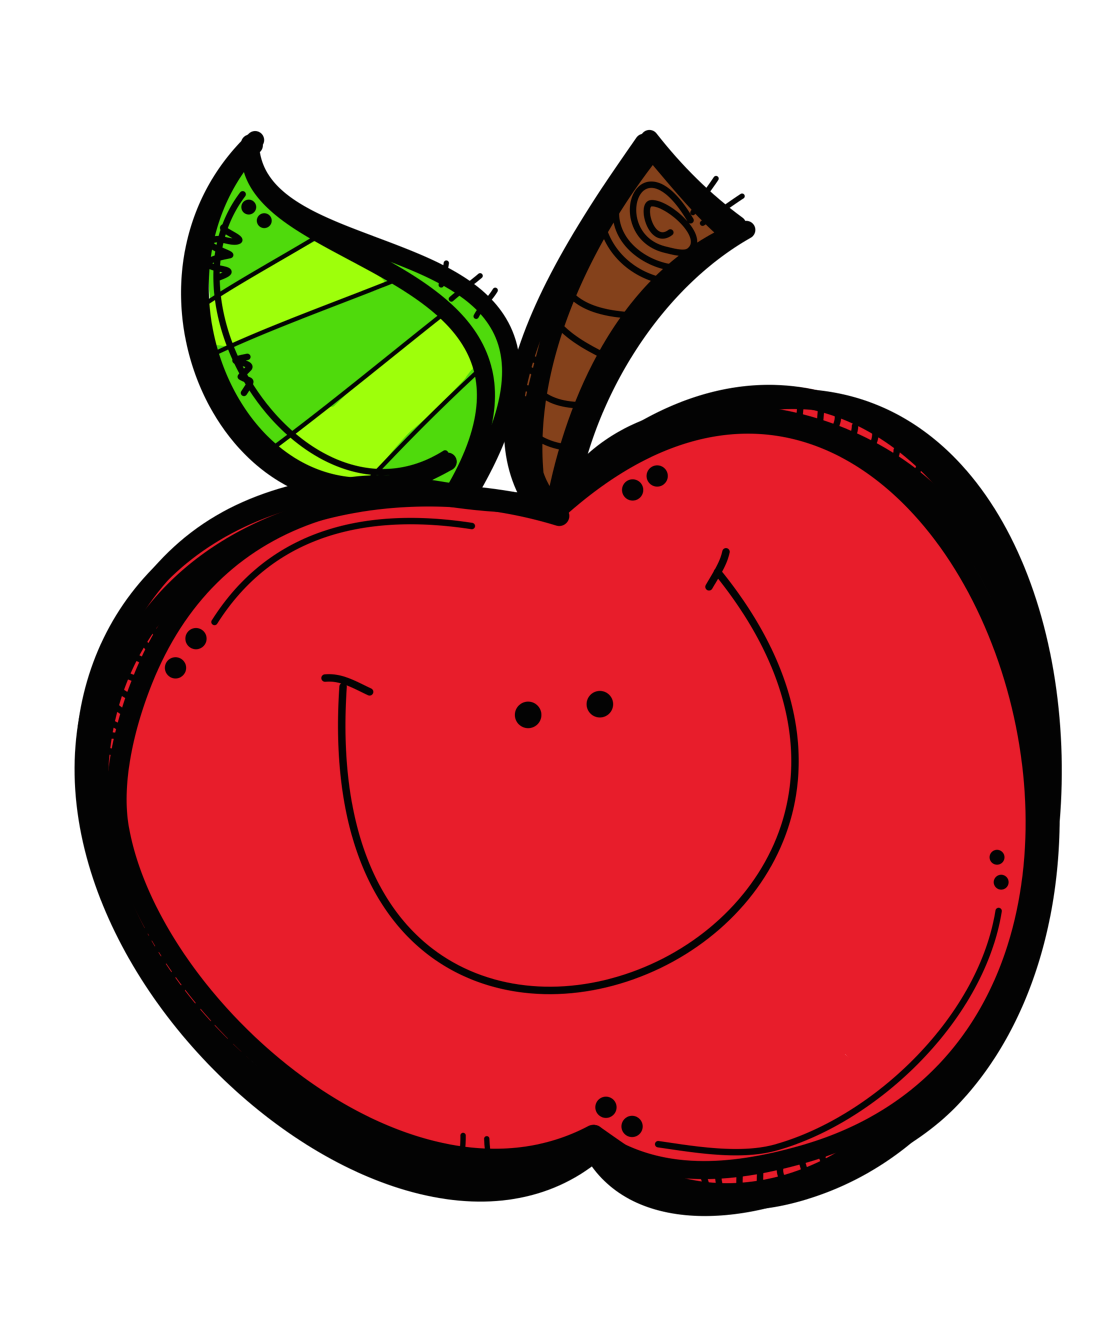 Apple hand clipart royalty free download 1 teacher apple clipart - ClipartFest royalty free download